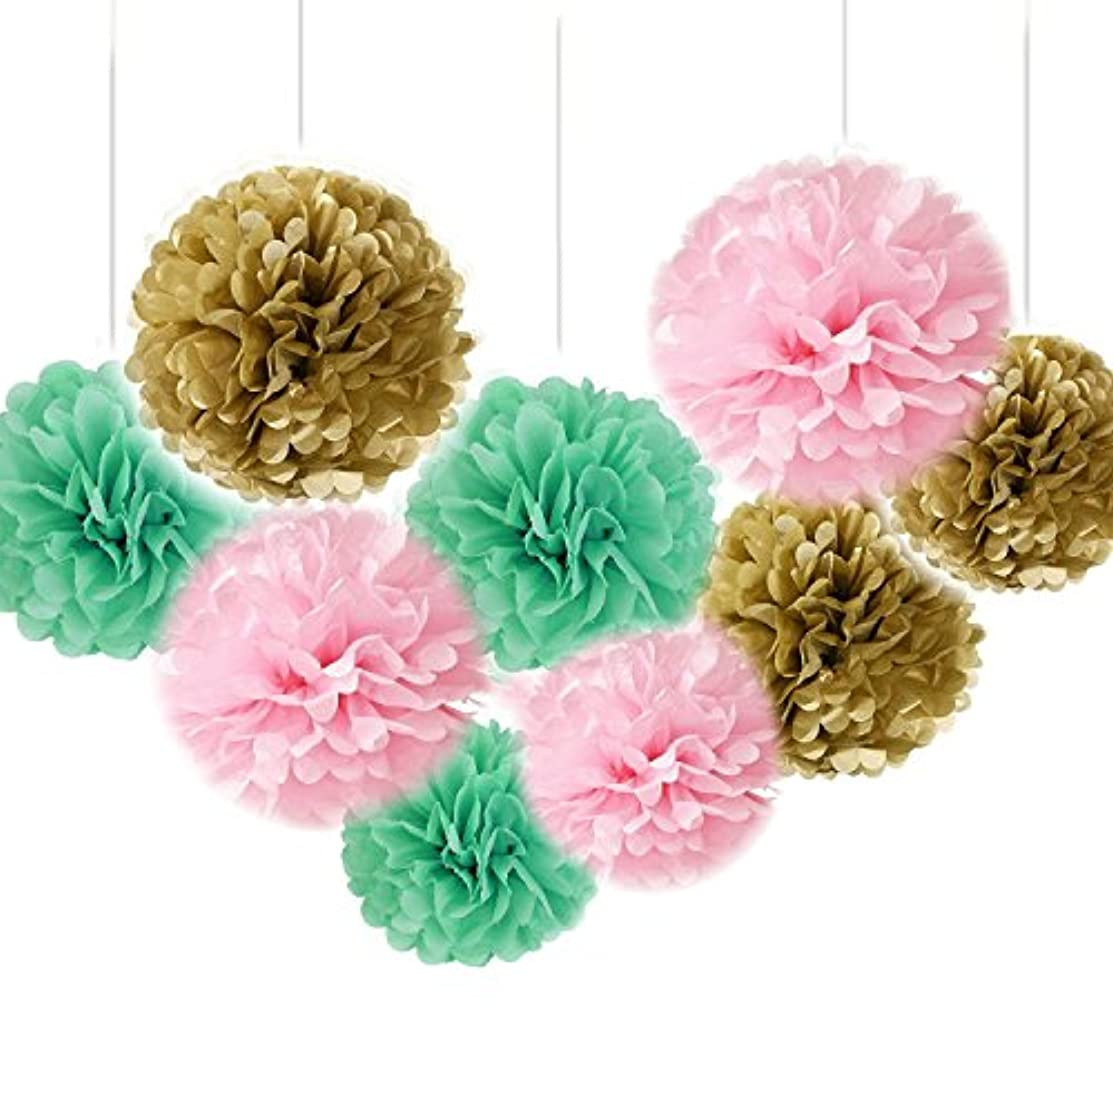 Fascola Set of 9 Gold Pink Mint Tissue Paper Pompoms Wedding Flower Birthday Bridal Shower Party Decoration